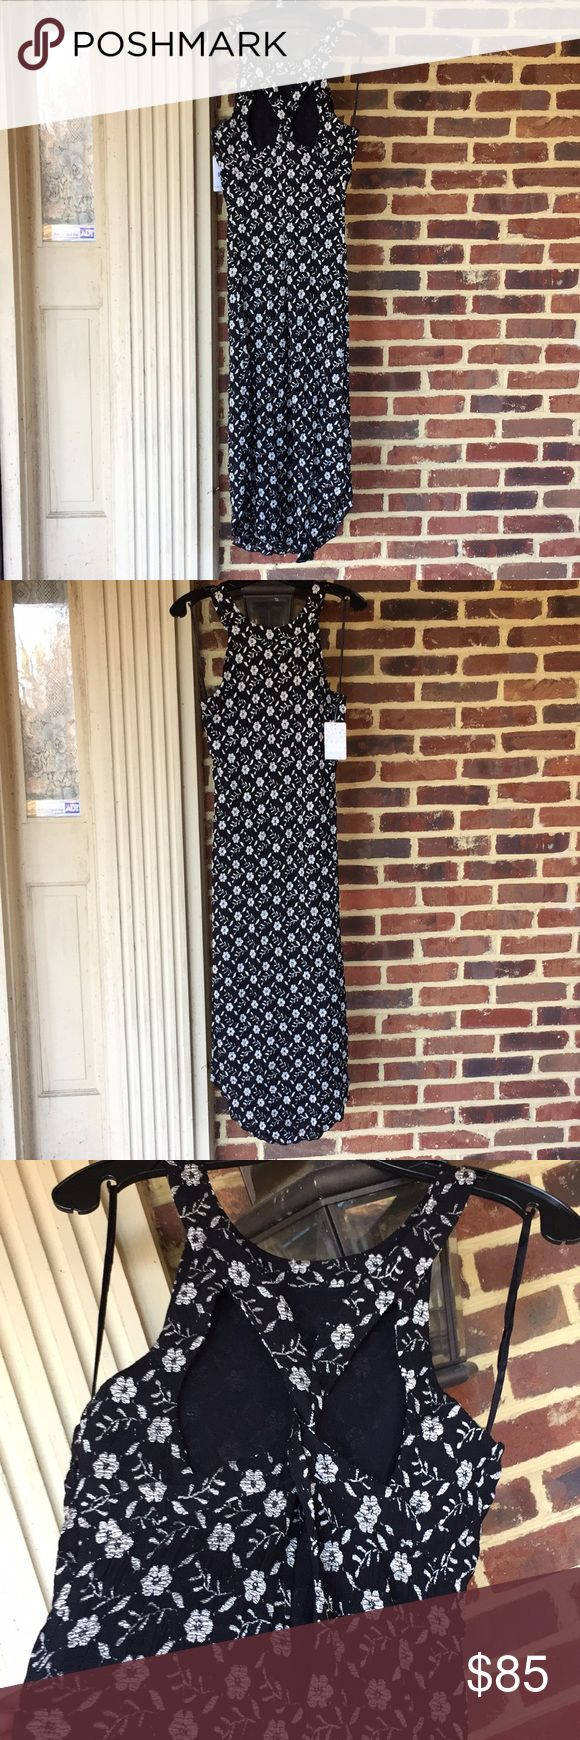 Free People black/silver dress w/ cut-outs- NWT Stunning black and silver maxi dress from Free People. Slightly longer in the center with raised sides at the dress bottom. Pretty and fresh flower pattern and a gorgeous braided cut out design at the back of the dress. Beautiful on. New with Tags. Free People Dresses Maxi